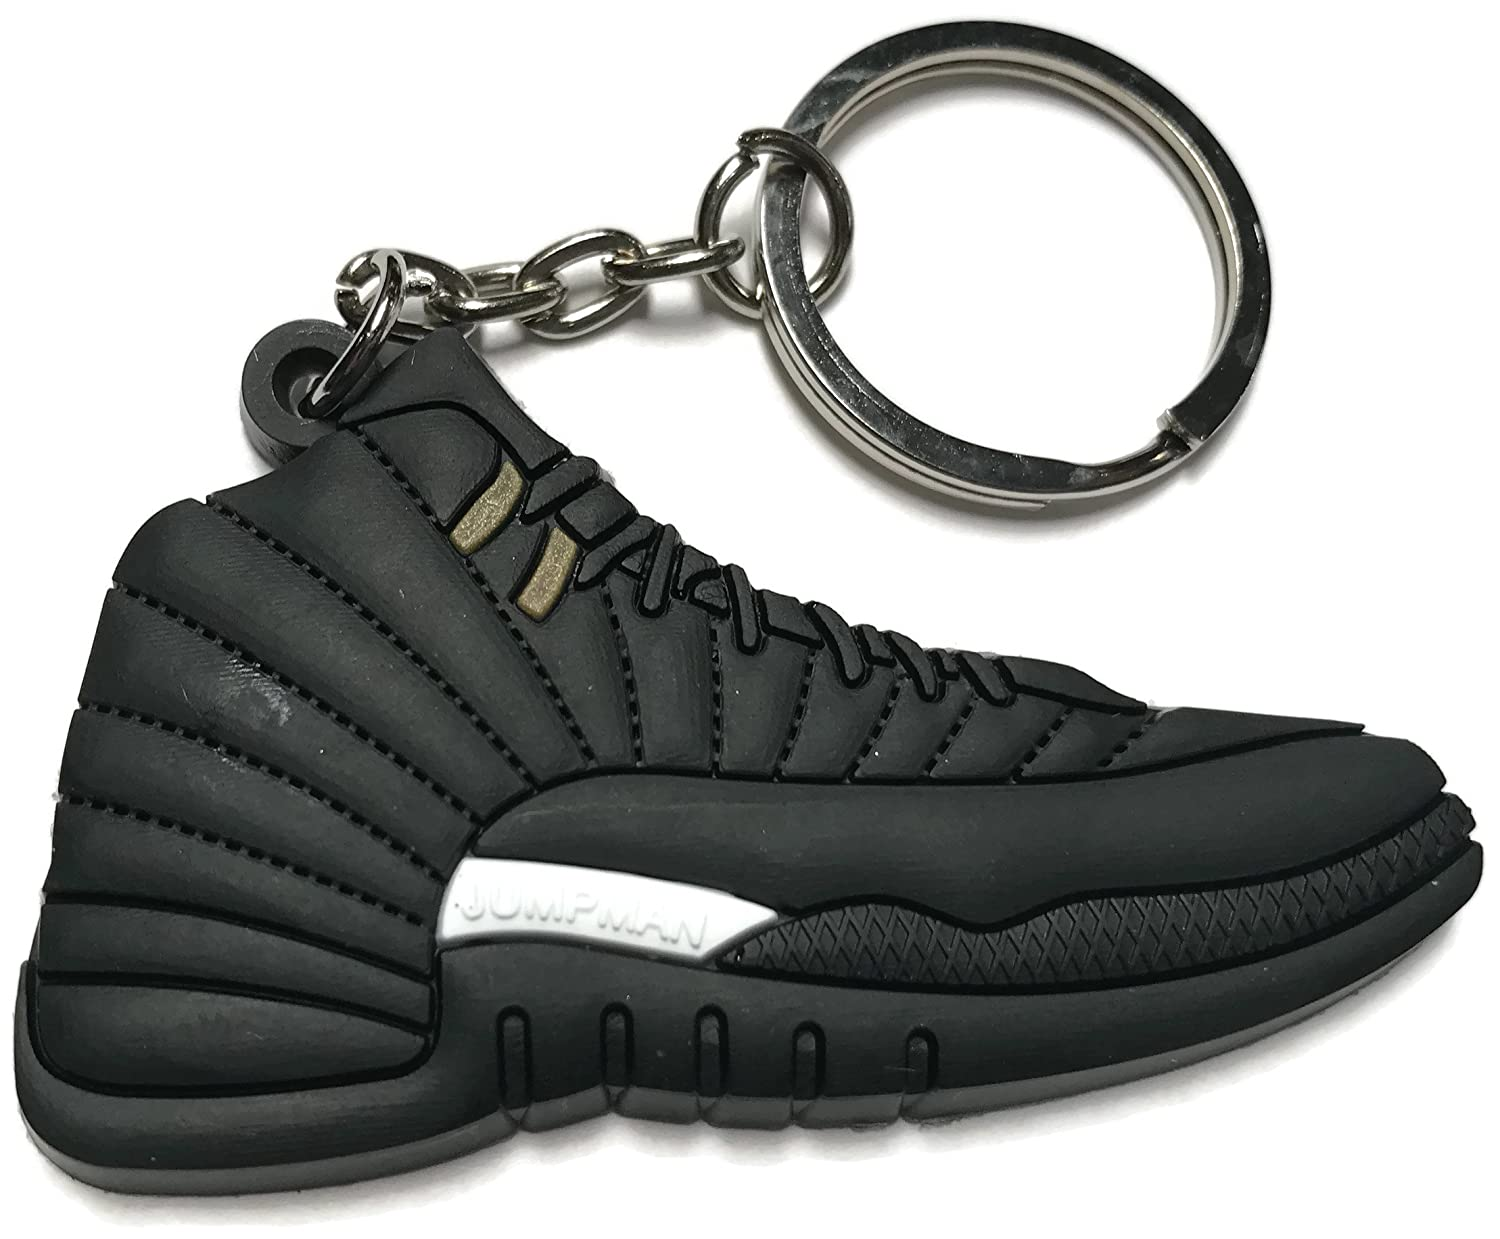 super popular 0b0bc b3123 Air Jordan Retro 12 Black and White Shoe Keychain Collectable